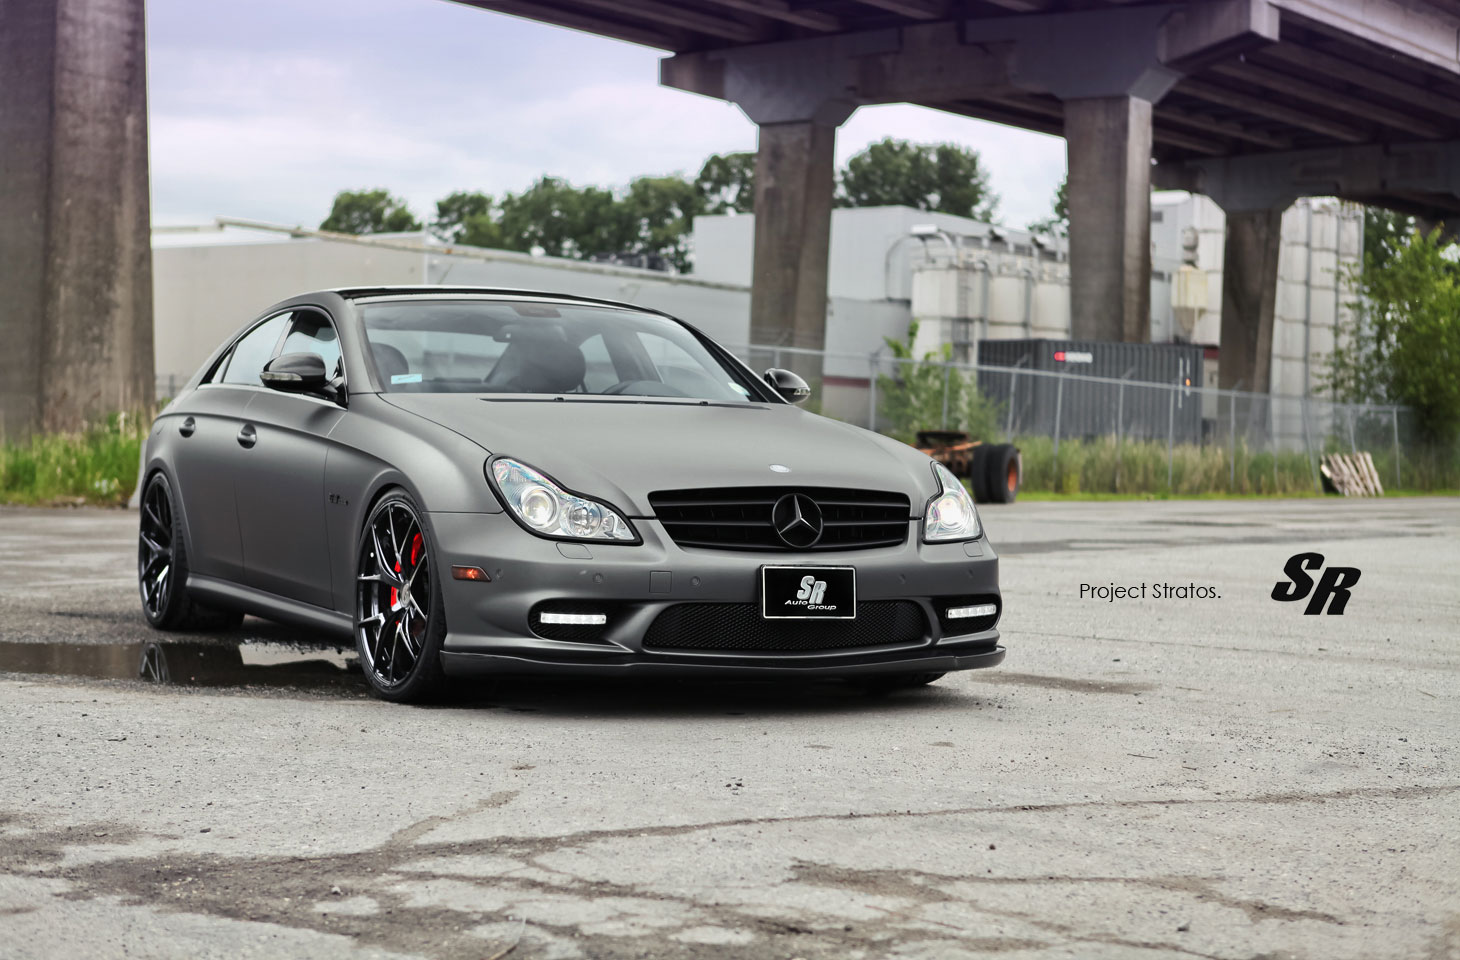 Mercedes-Benz CLS63 AMG jako Project Stratos 3